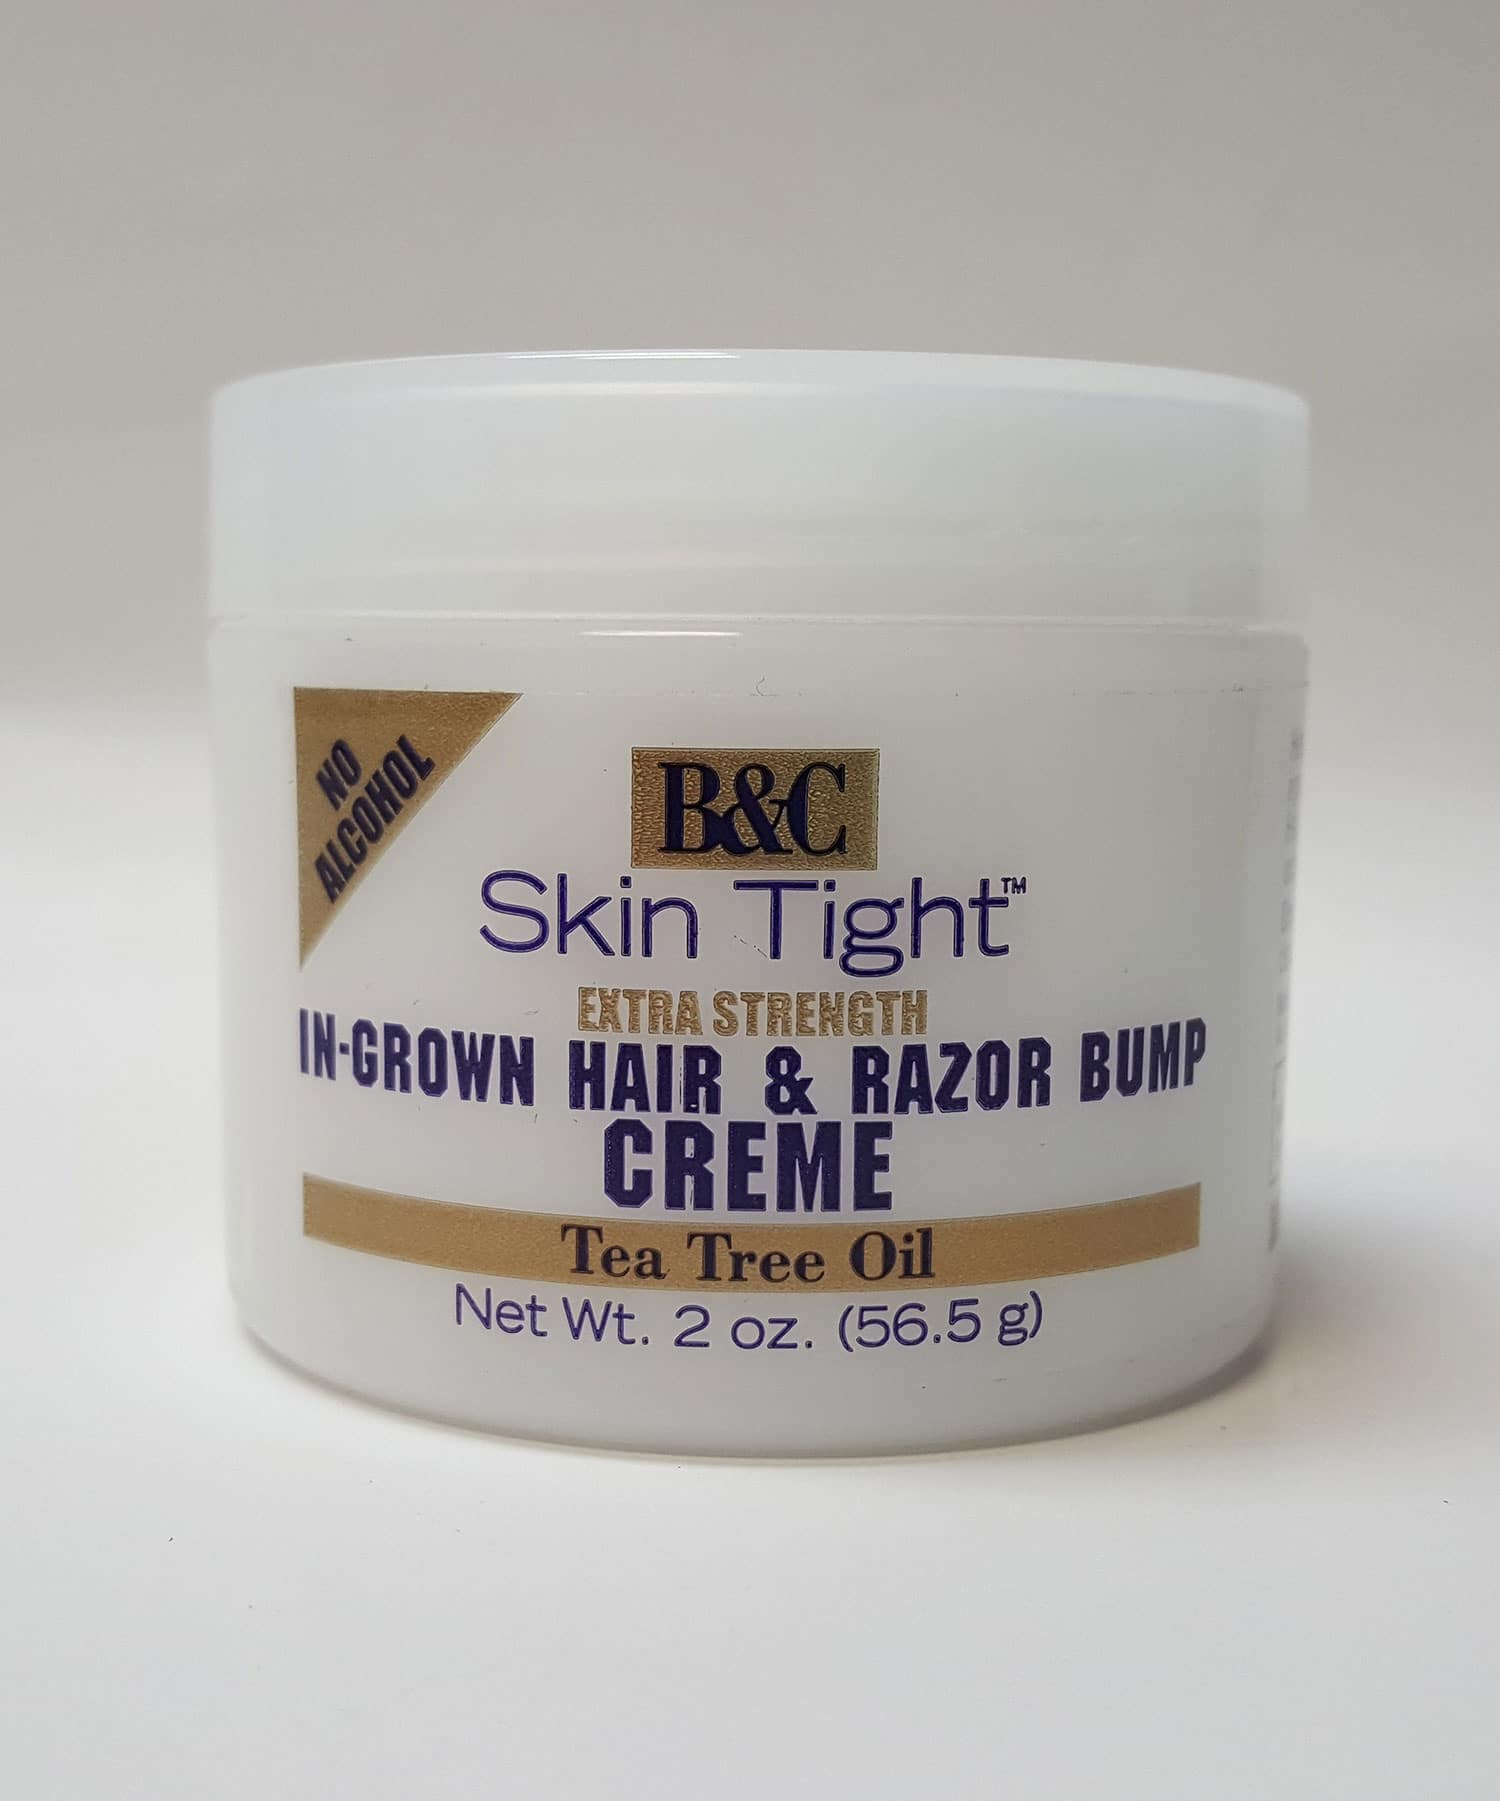 B&C In-Grown Hair & Razor Bump Cream 2oz